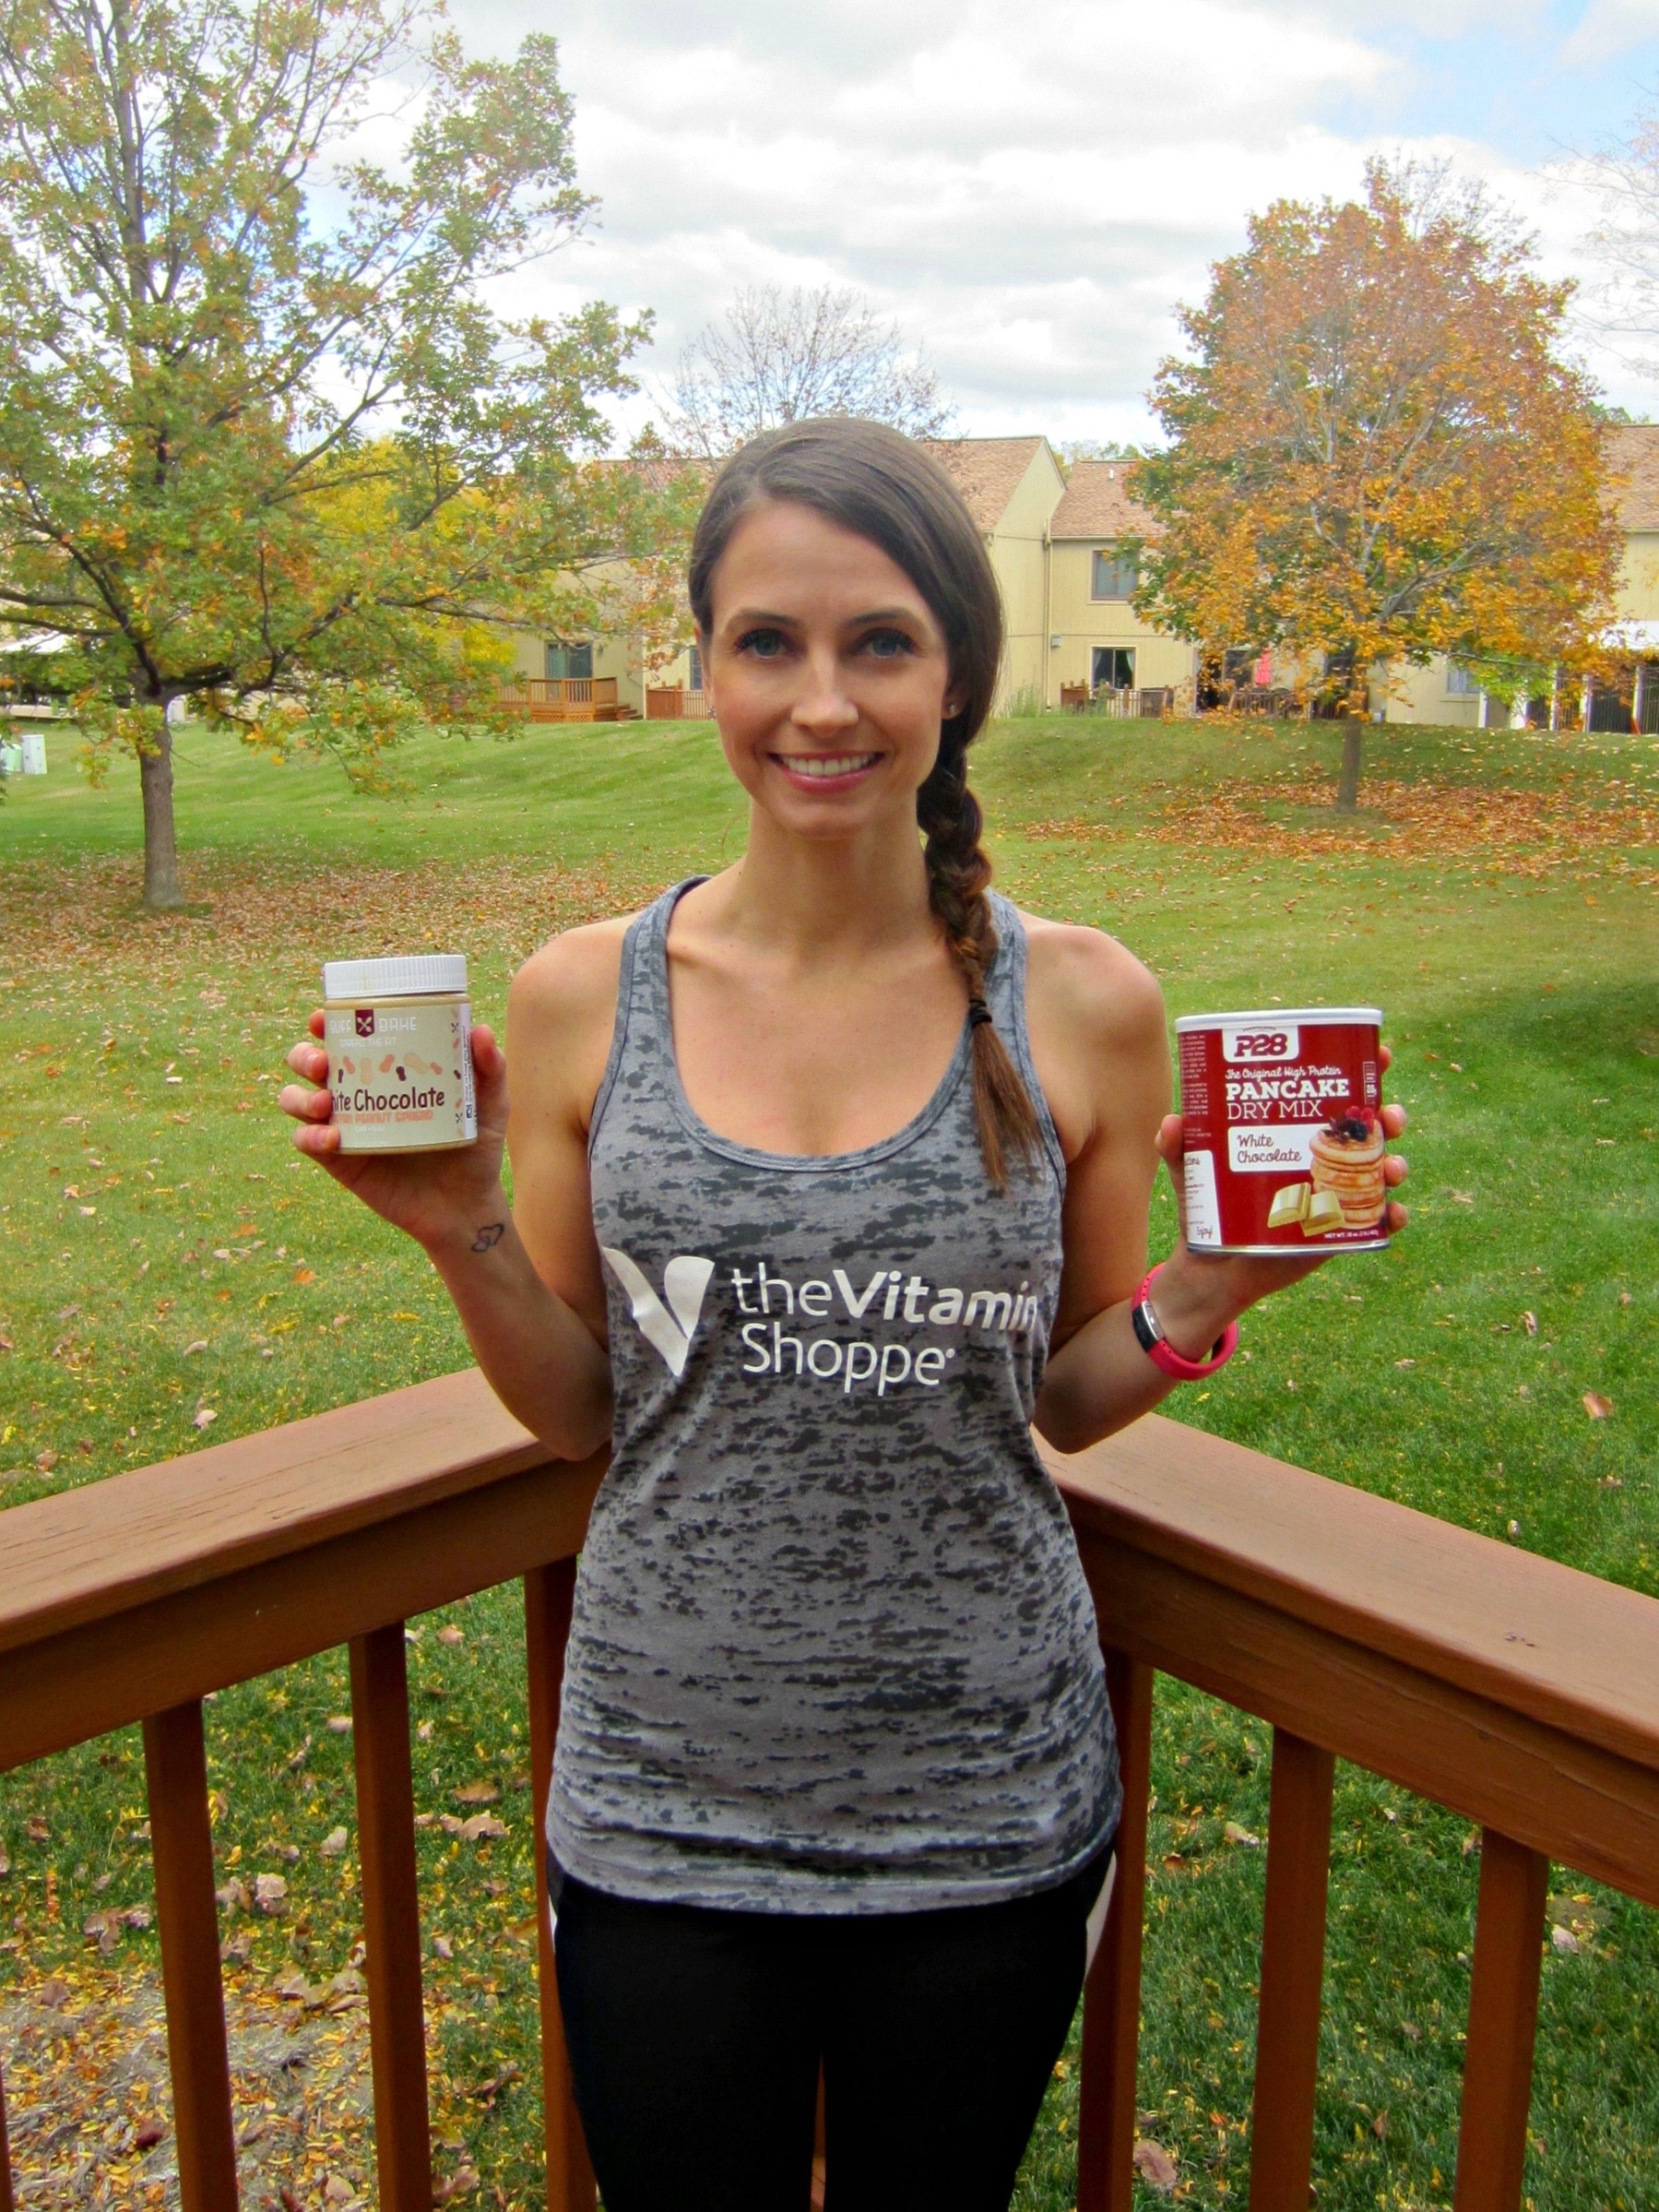 heather opening the #proteinpantry from vitamin shoppe